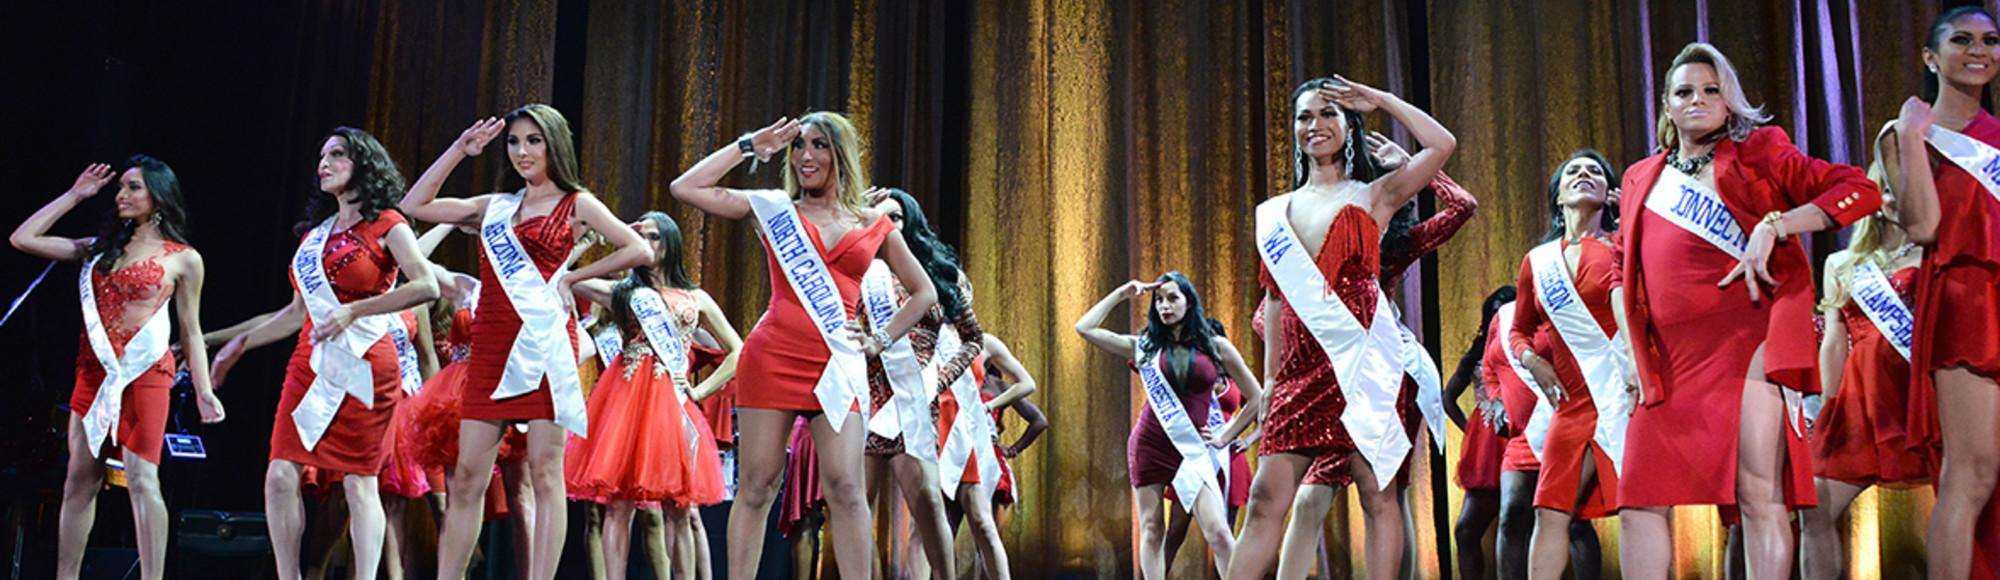 Inside the 2016 Queen USA Pageant